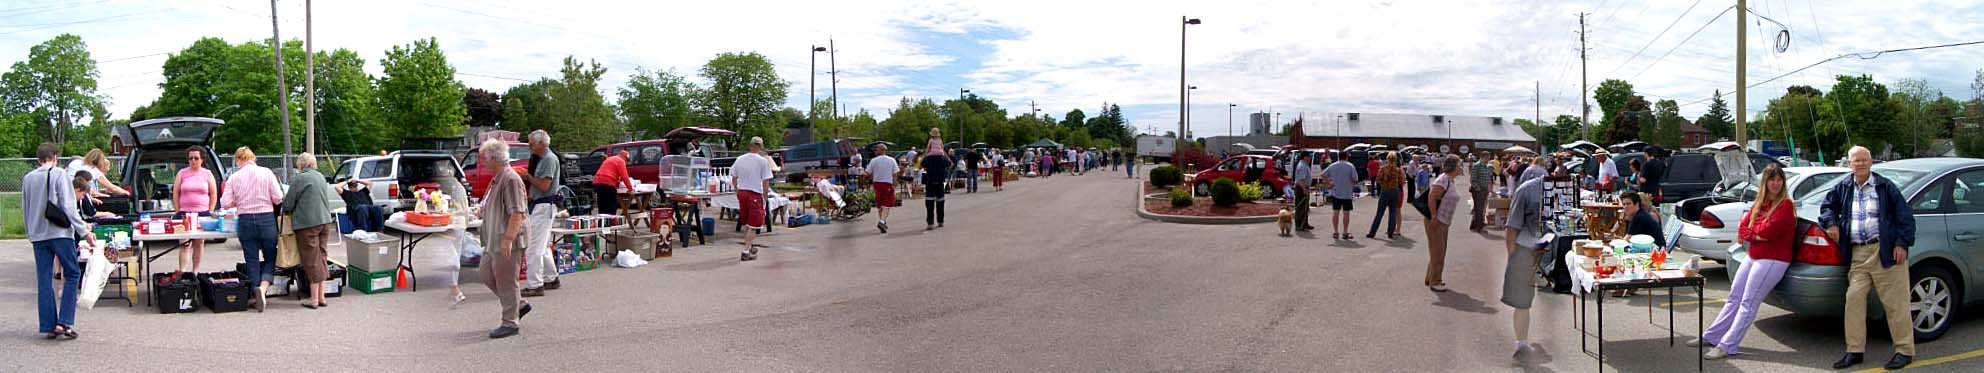 The Saturday morning trunk sale started up again in Acton on May 25, 2007.